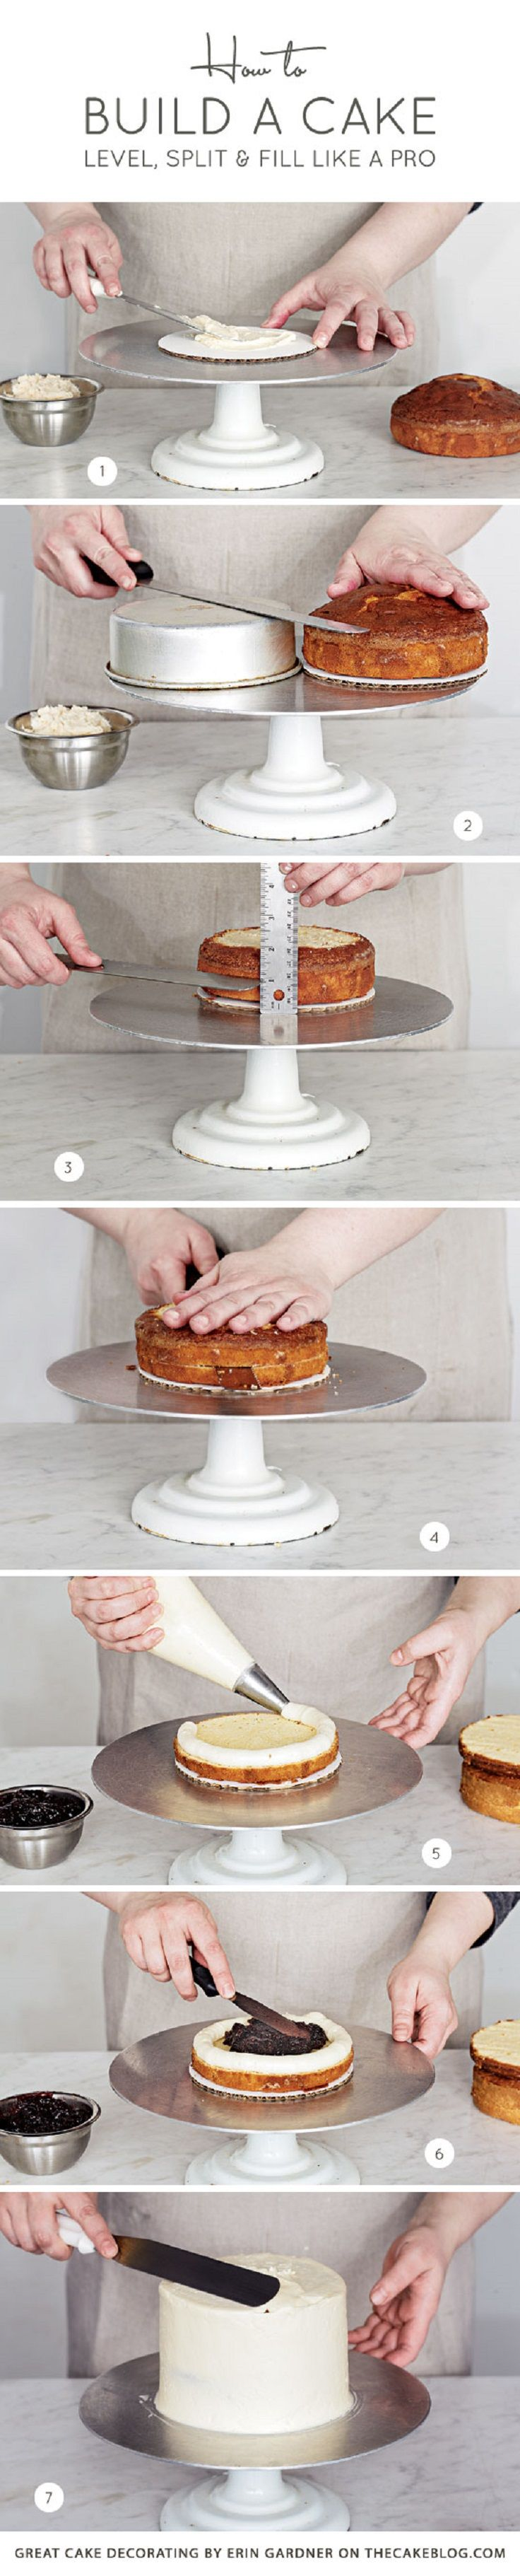 How To Build a Cake Level, Split and Fill Like a Pro - 17 Amazing Cake Decorating Ideas, Tips and Tricks That'll Make You A Pro